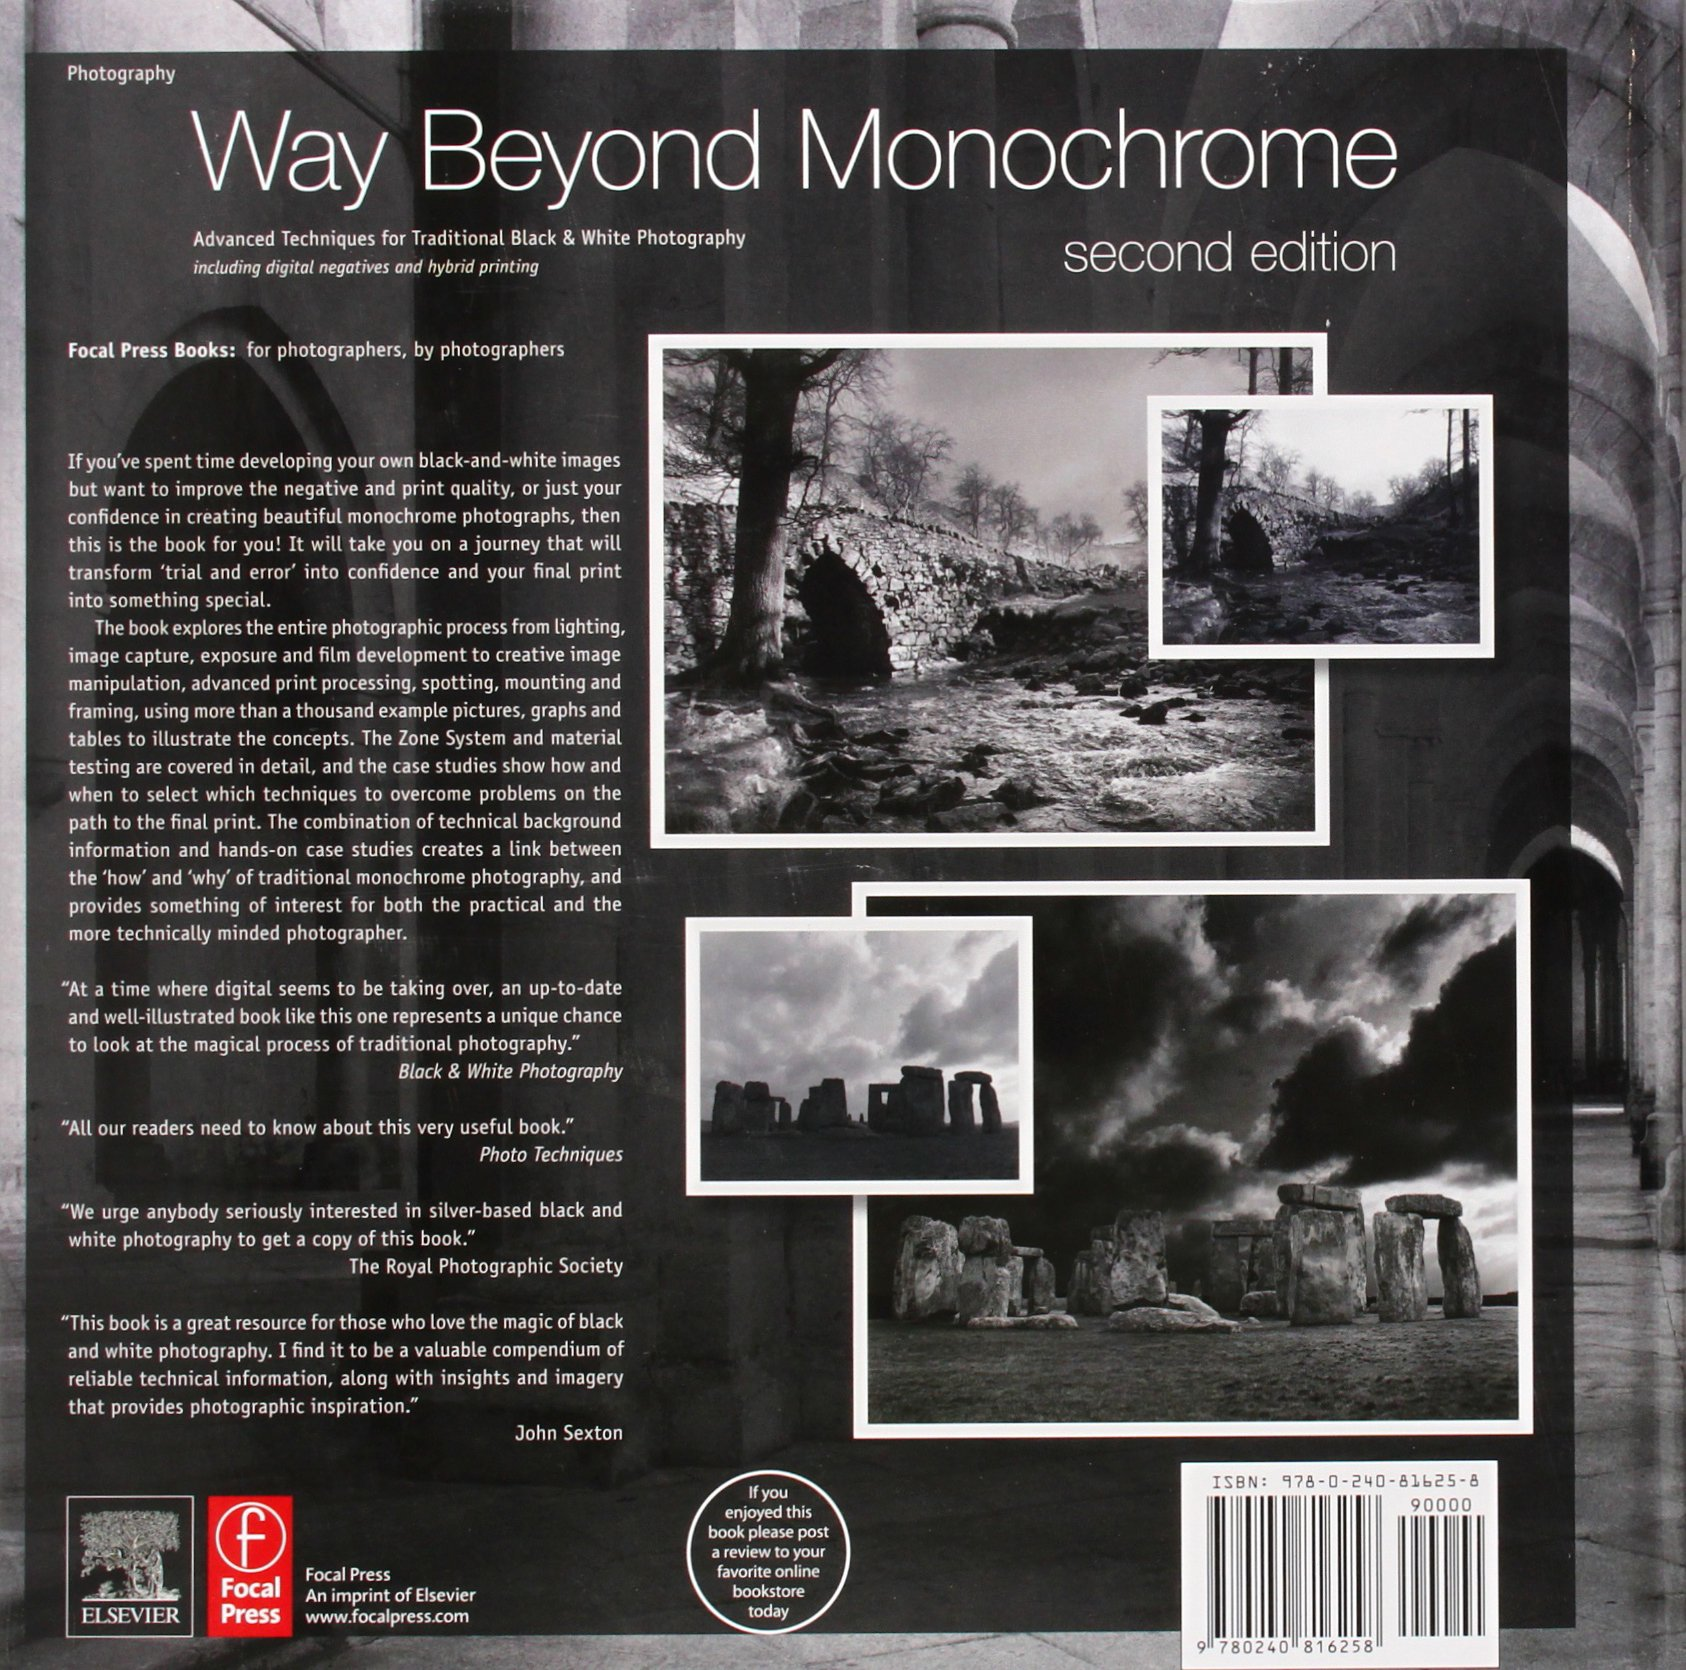 Way beyond monochrome 2e advanced techniques for traditional black white photography including digital negatives and hybrid printing amazon co uk ralph